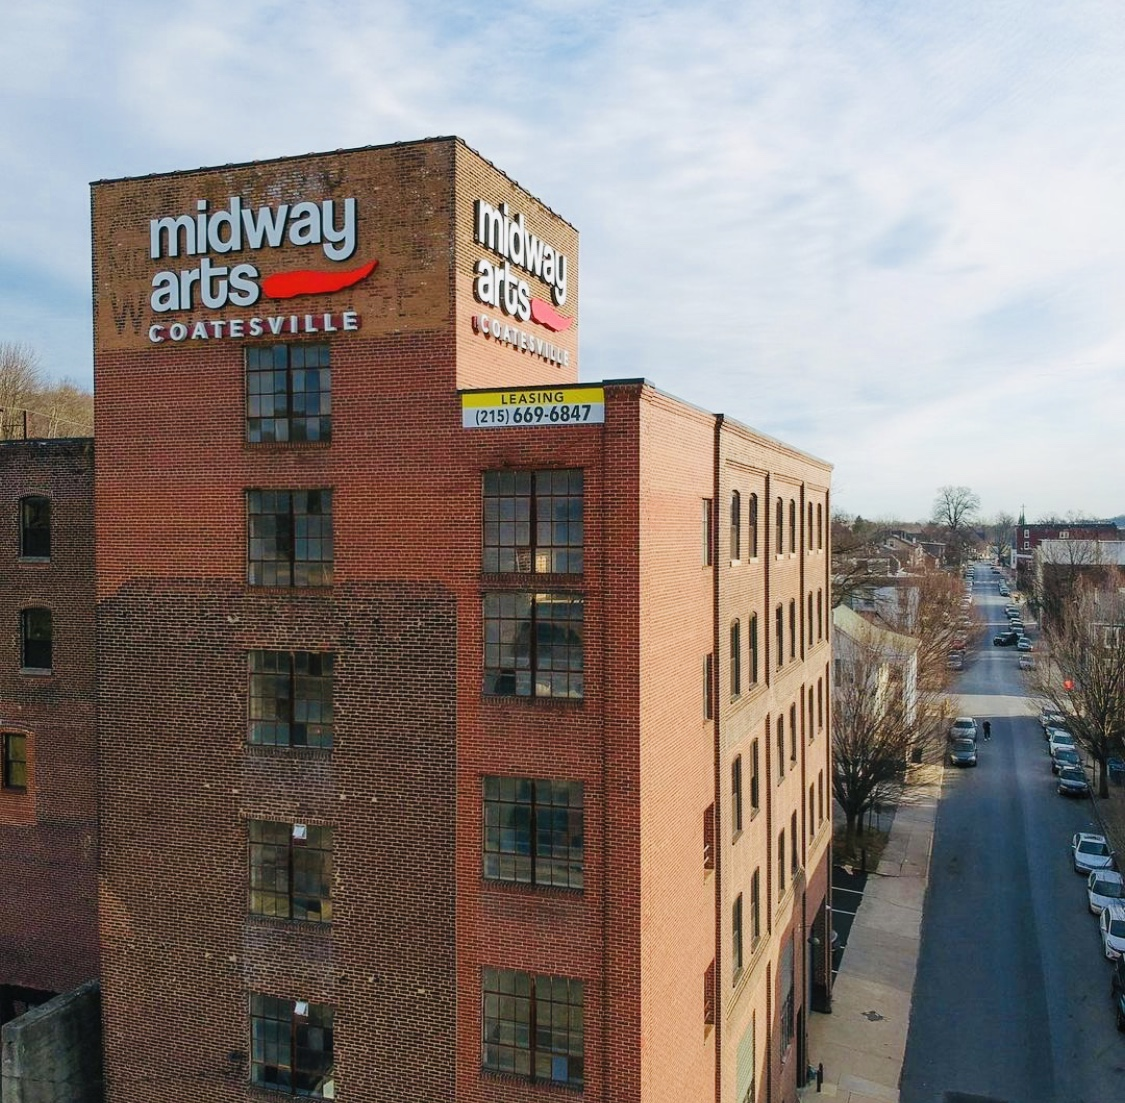 Arial picture of the Midway Arts building in Coatesville, PA.